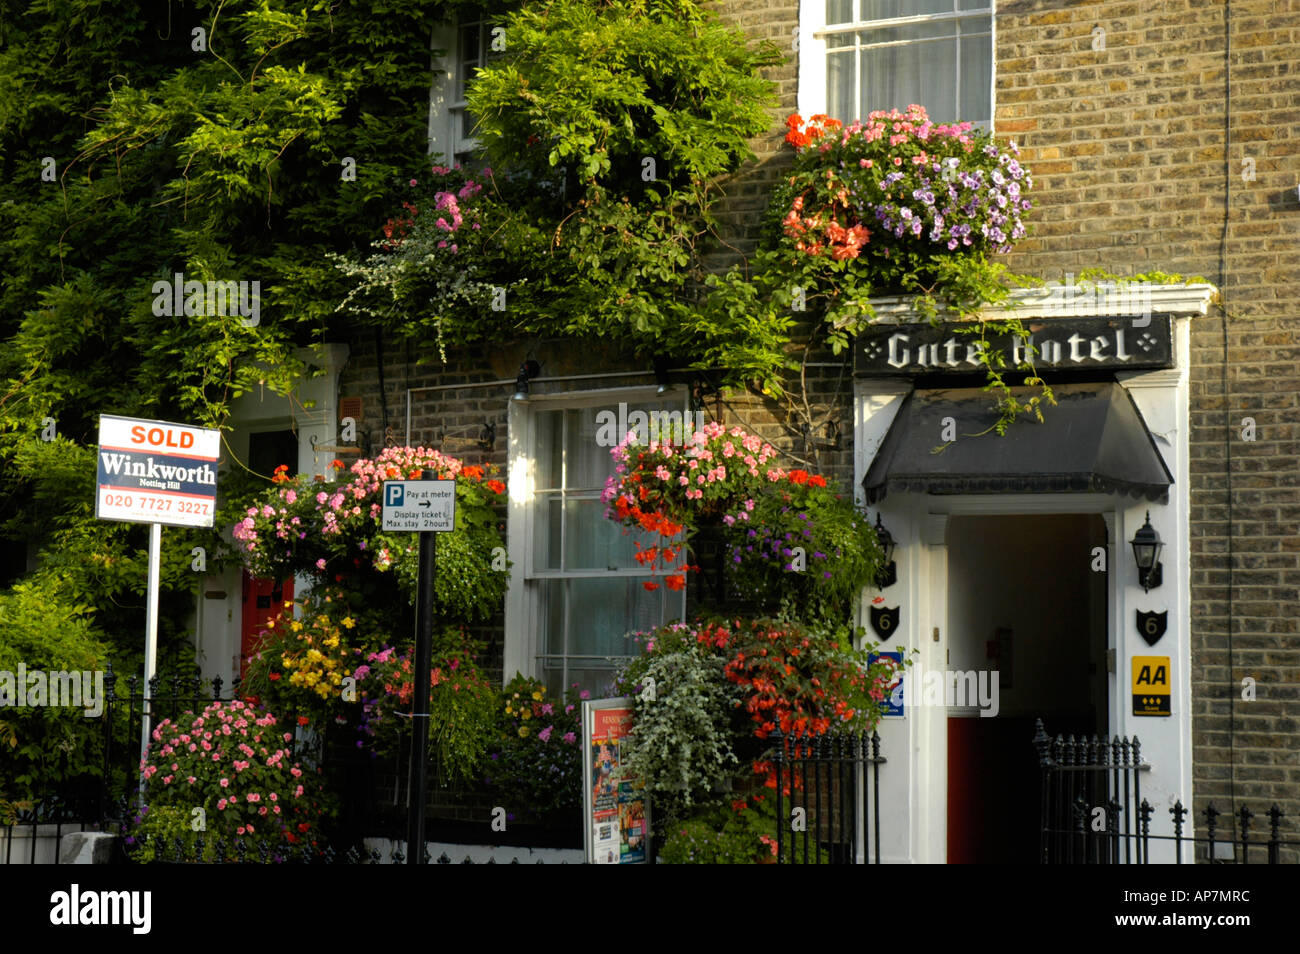 The Gute Hotel Guest House In Potobello Road London England